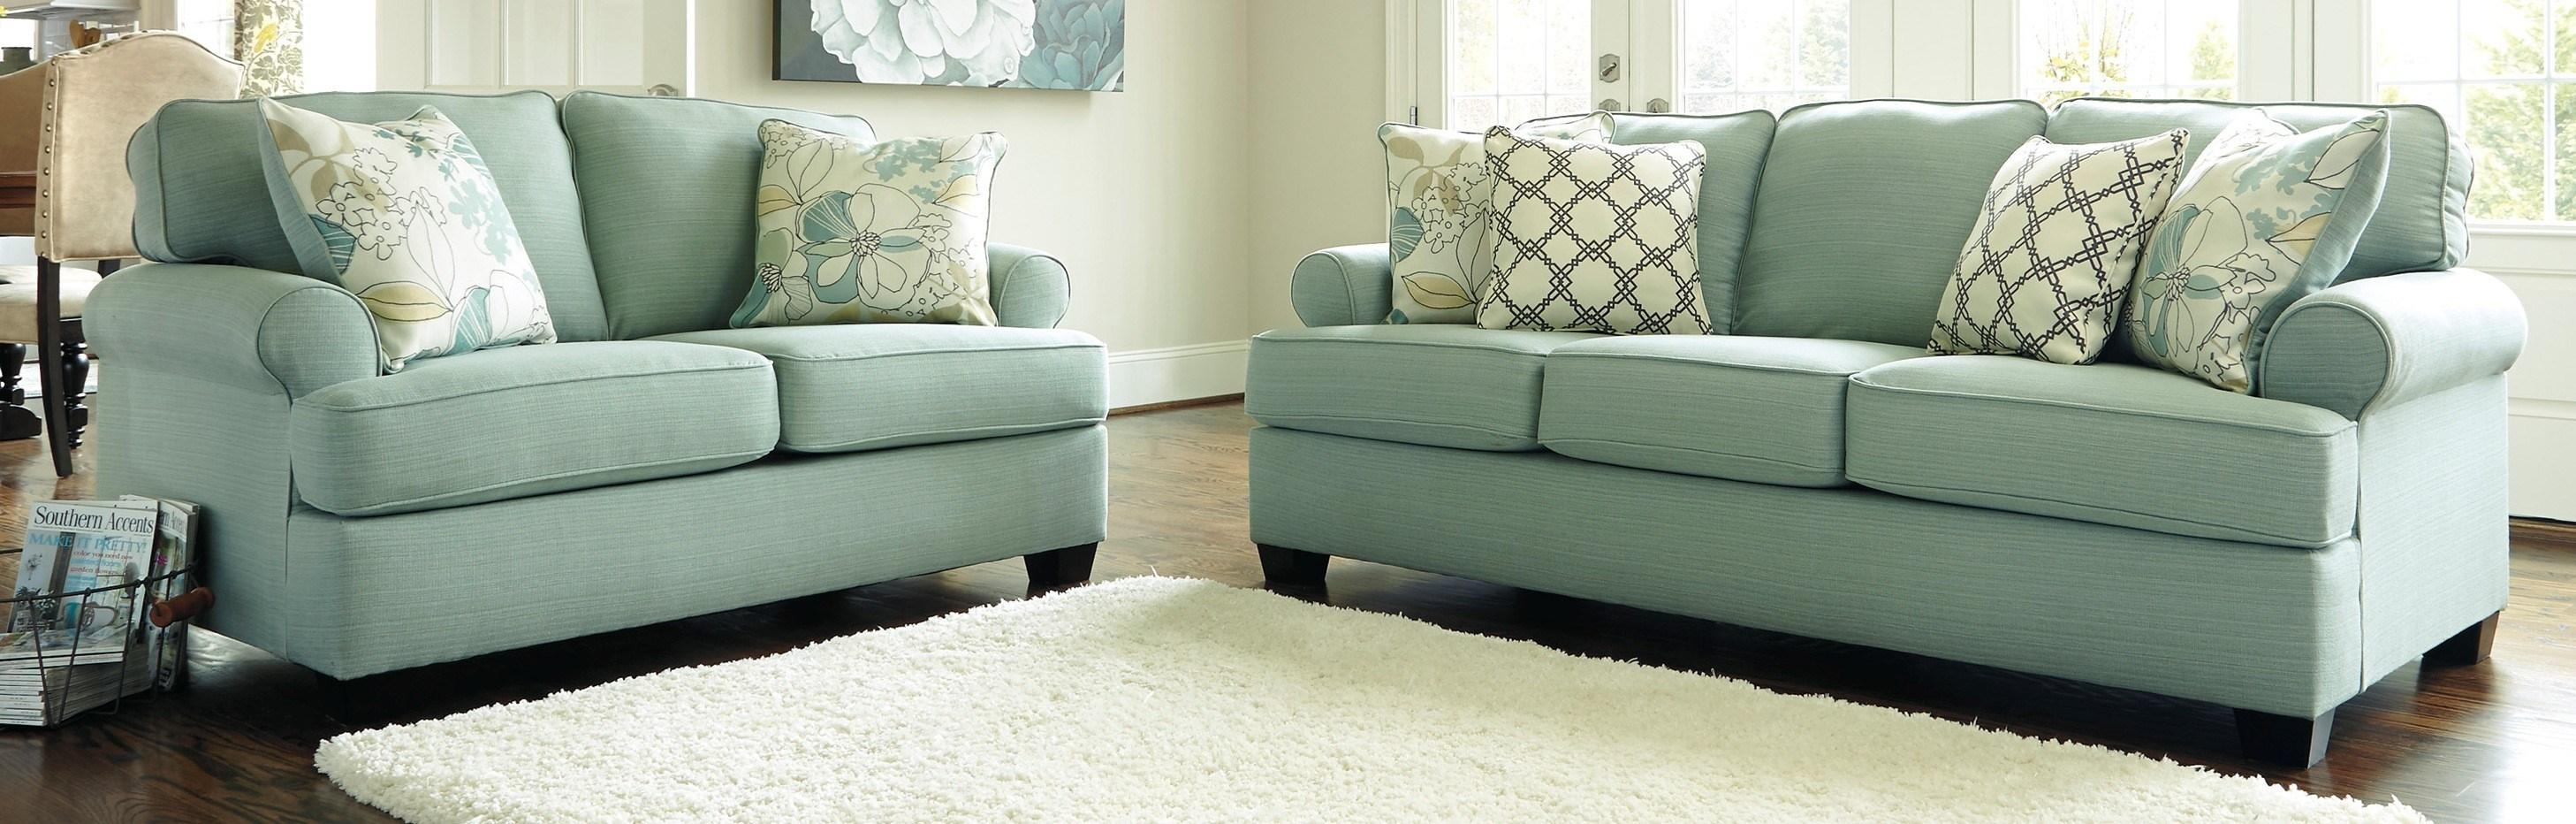 Seafoam Green Sofa | Furniture Store Closing Down Sale Pertaining To Seafoam Green Couches (Image 12 of 20)